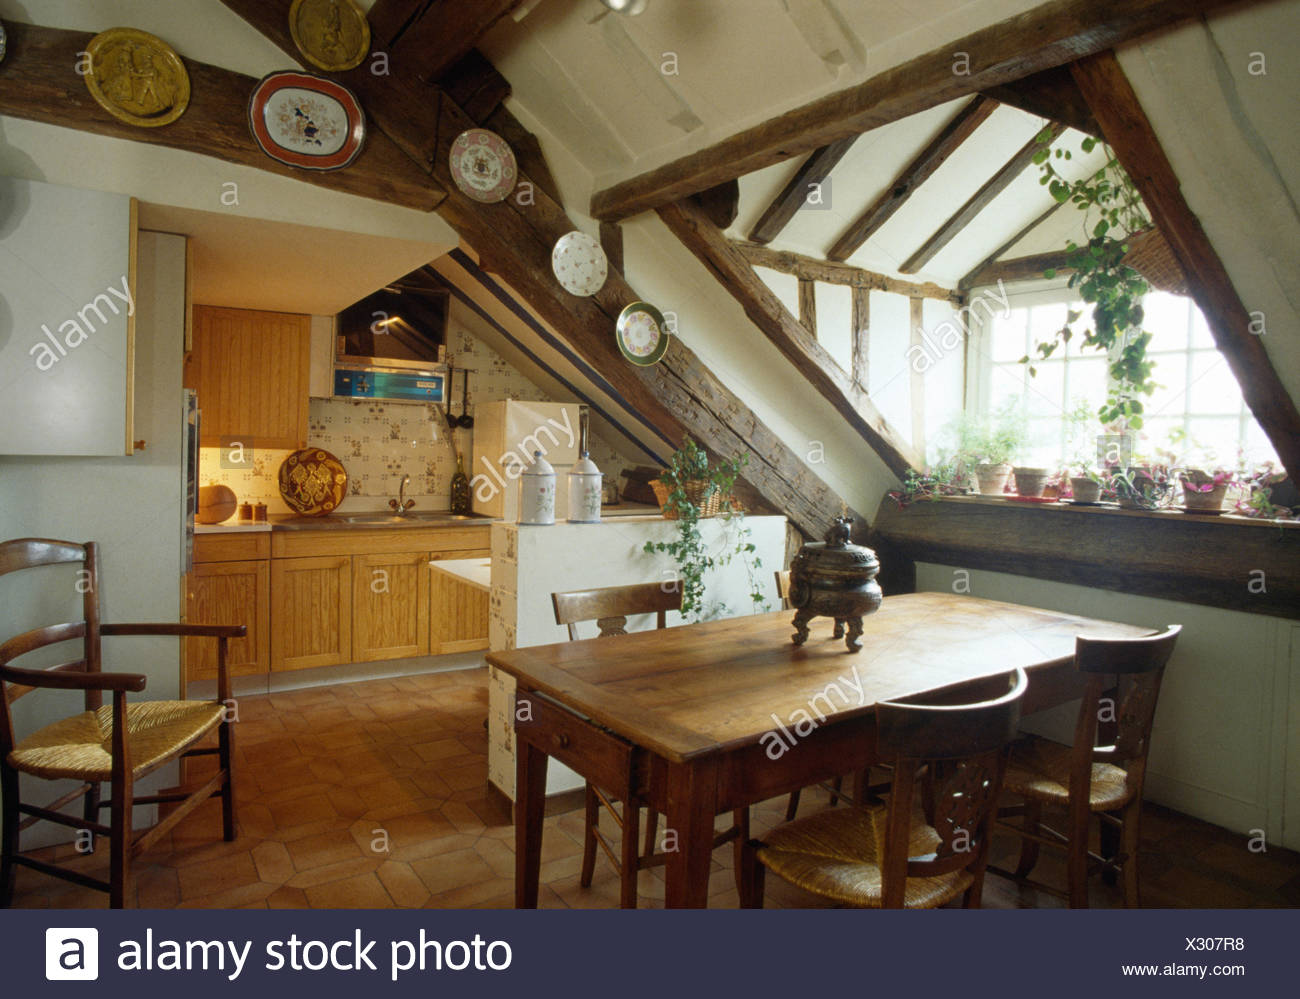 Simple pine table and chairs in attic kitchen dining room - Stock Image